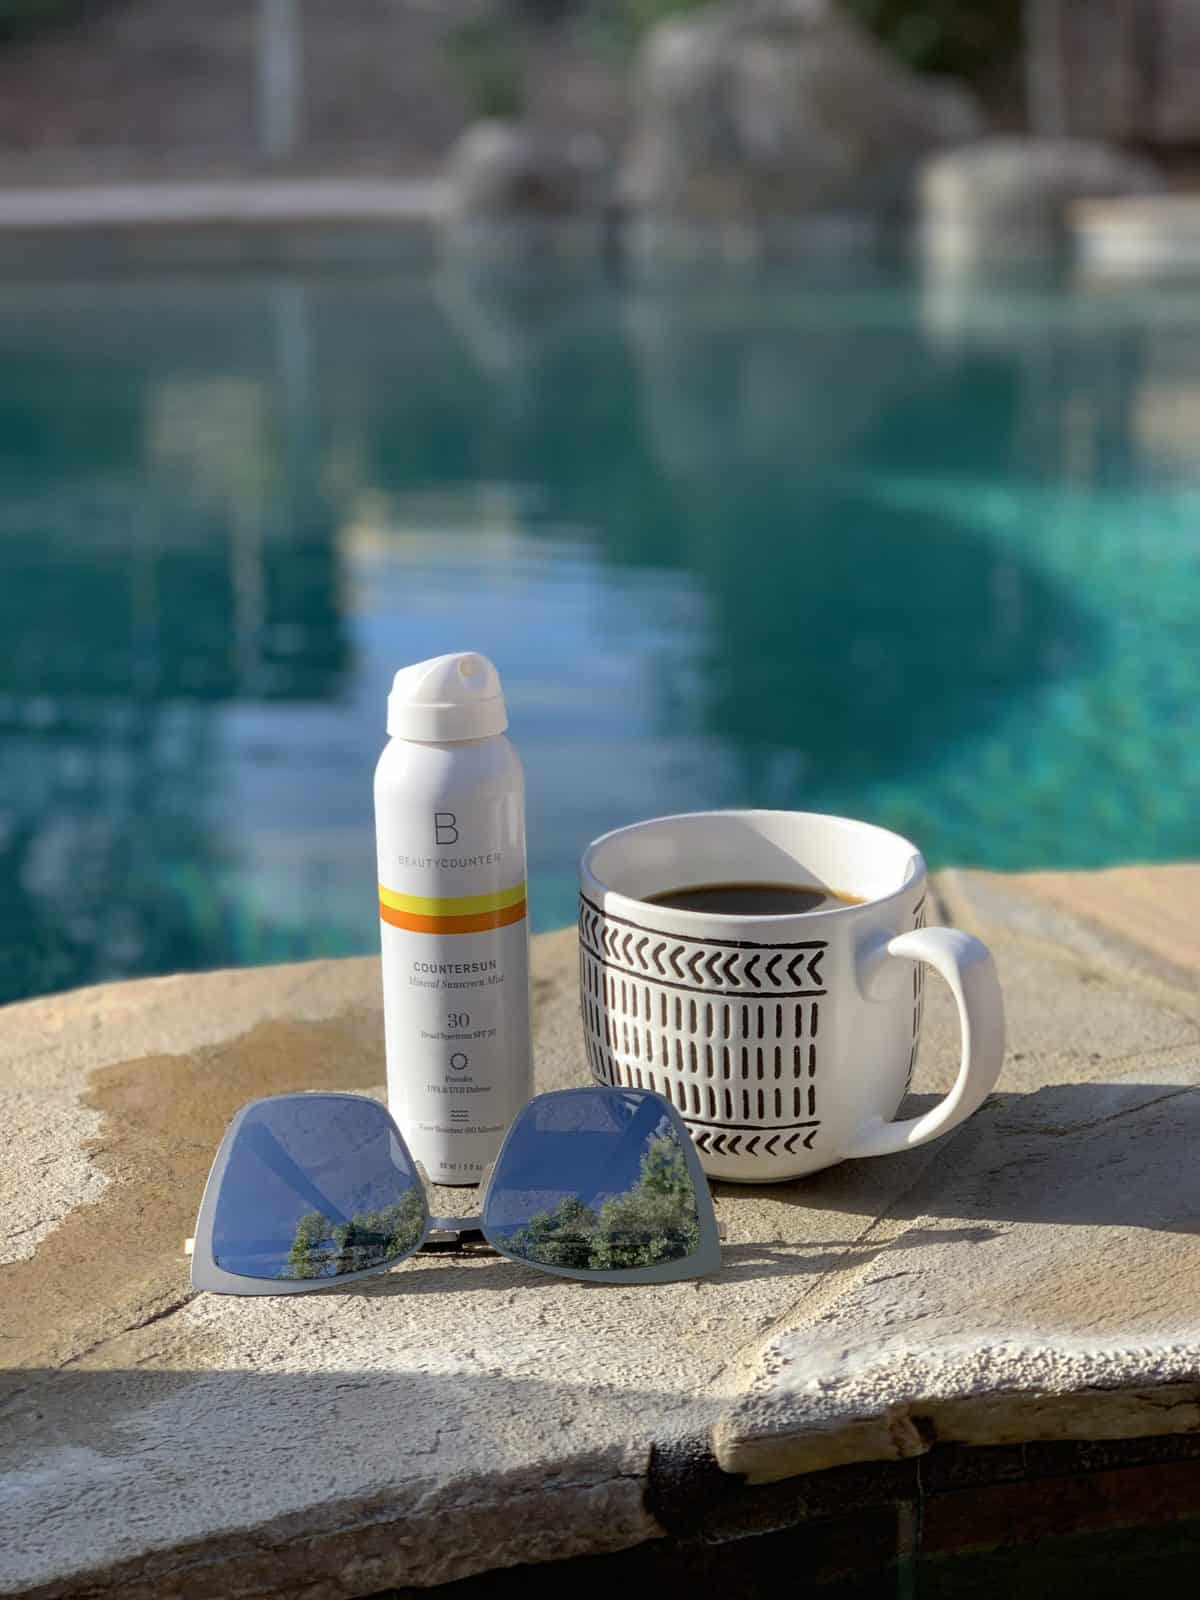 A bottle of Countersun Mineral Sunscreen Spray sits on a stone wall next to a cup of coffee and a pair of upside down reflective silver sunglasses. In the background is a crystal clear blue green pool.